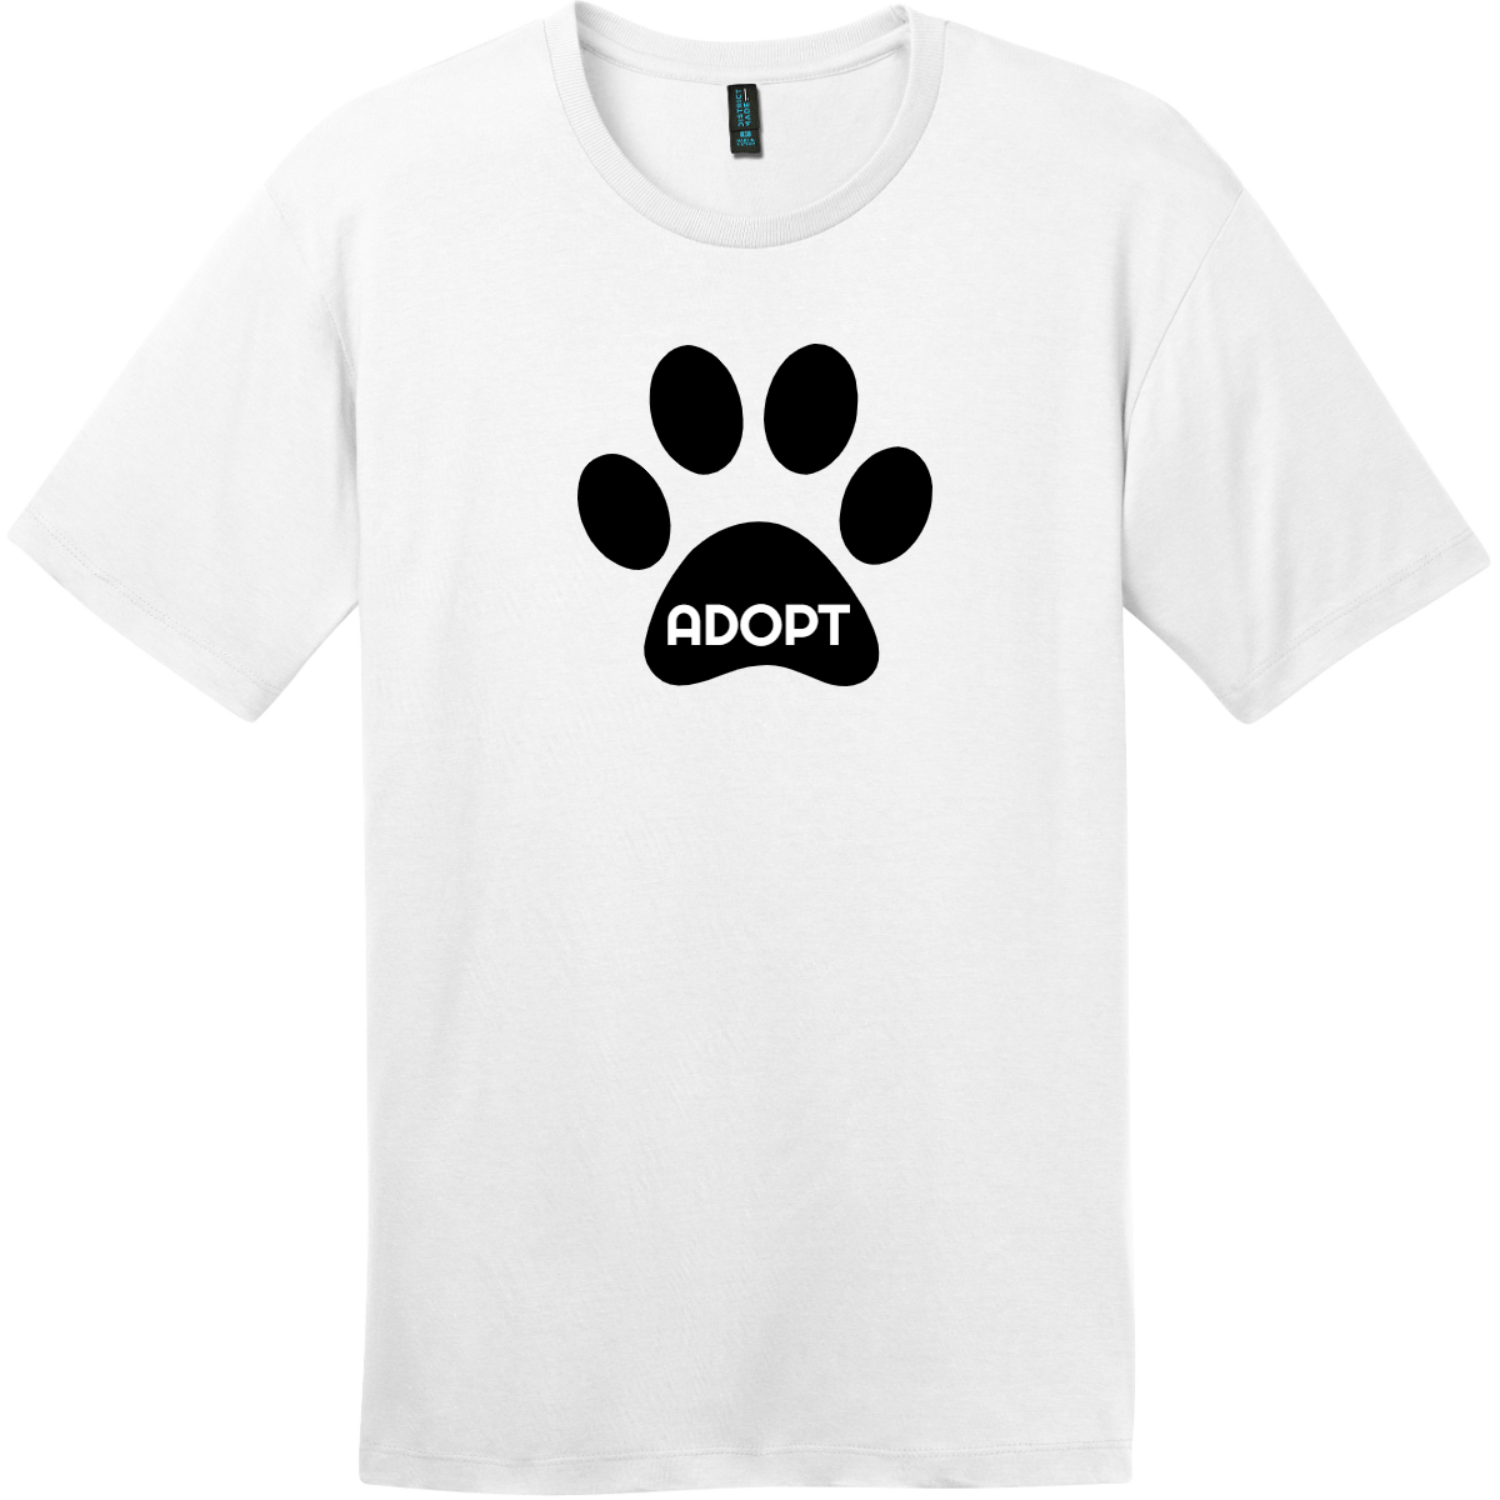 Adopt Pet Paw T-Shirt Bright White District Perfect Weight Tee DT104